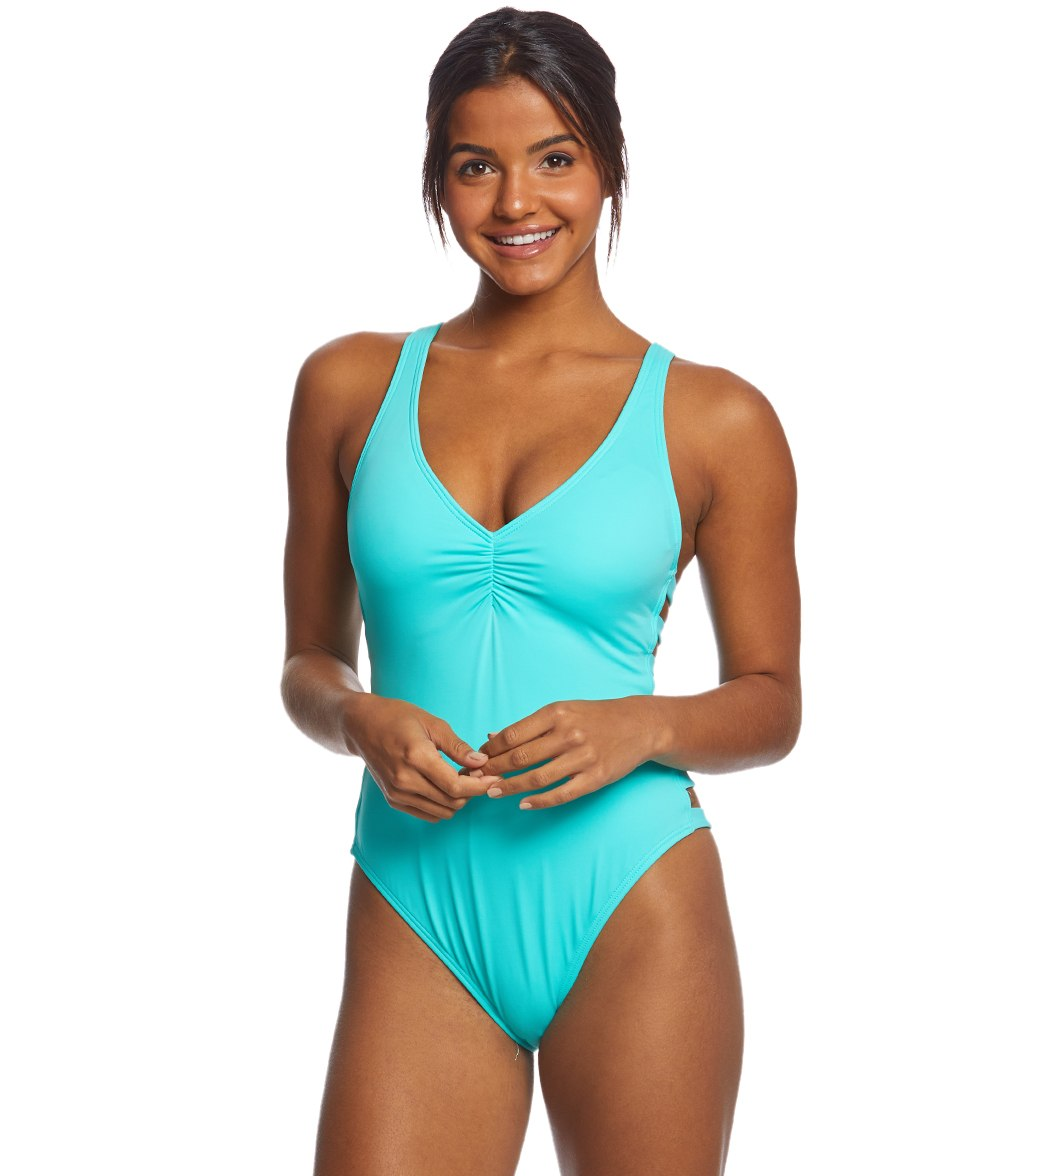 b79d8c0b86c4d Coco Rave Solid Paula Strappy Sides One Piece Swimsuit at SwimOutlet.com - Free  Shipping